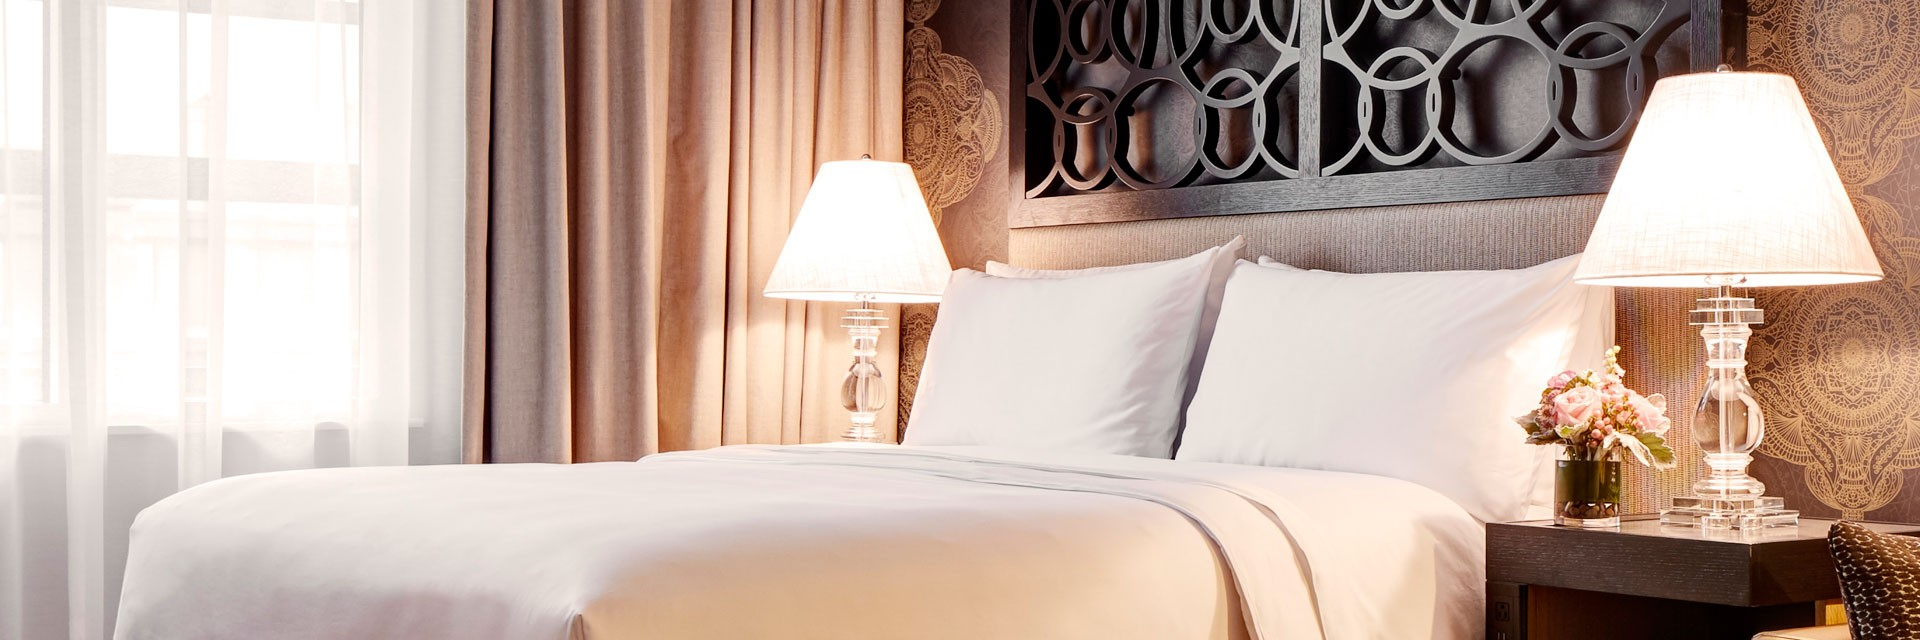 Archer Hotel Bed